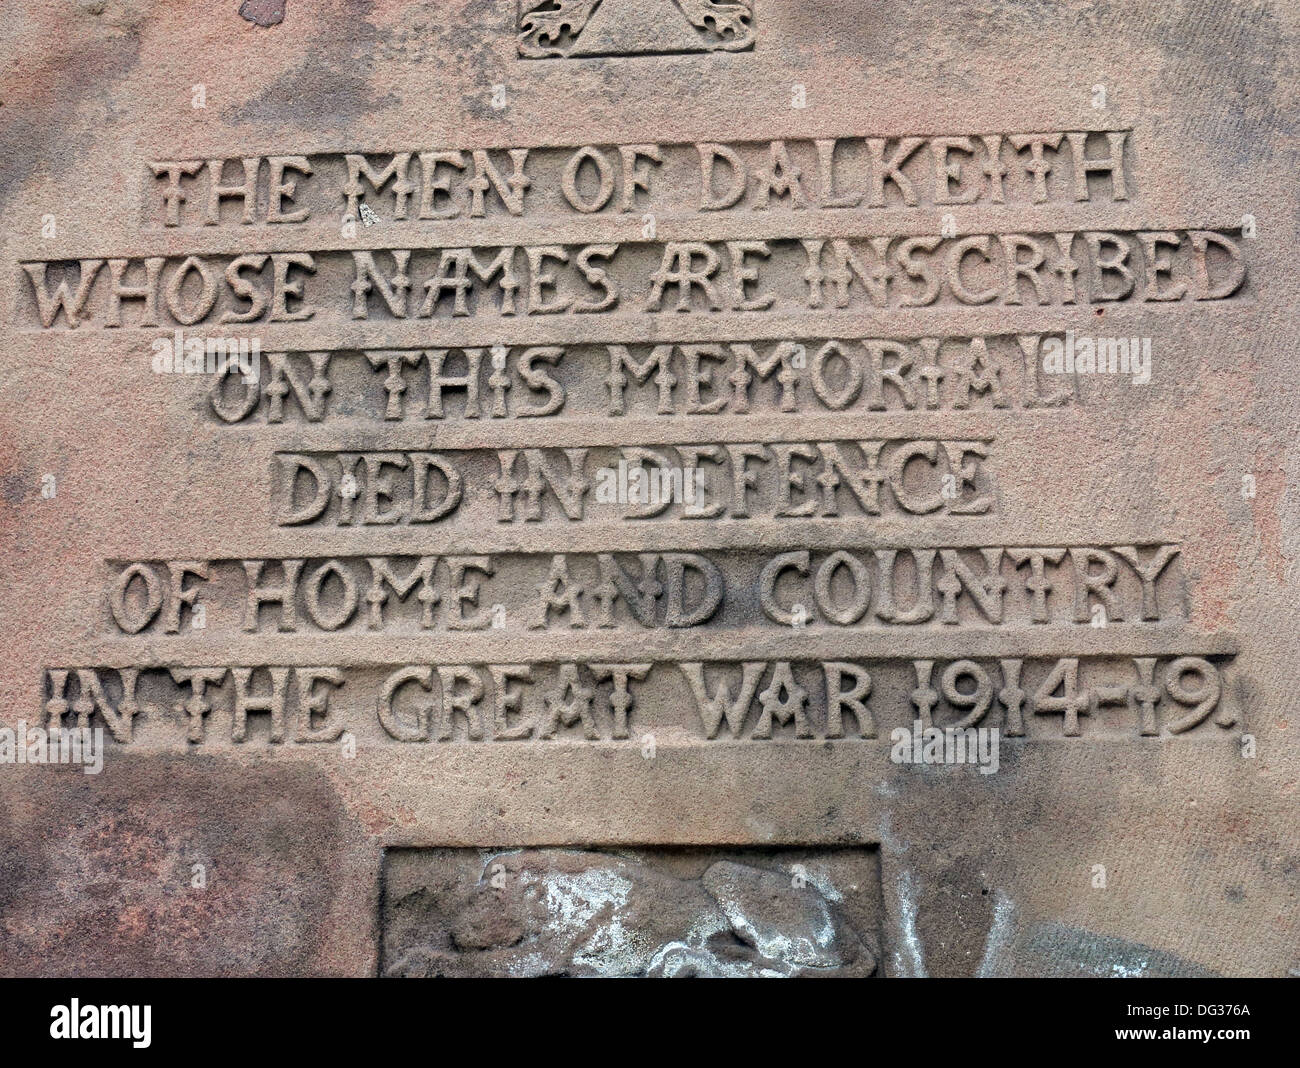 The Dalkeith park war memorial Midlothian - Stock Image